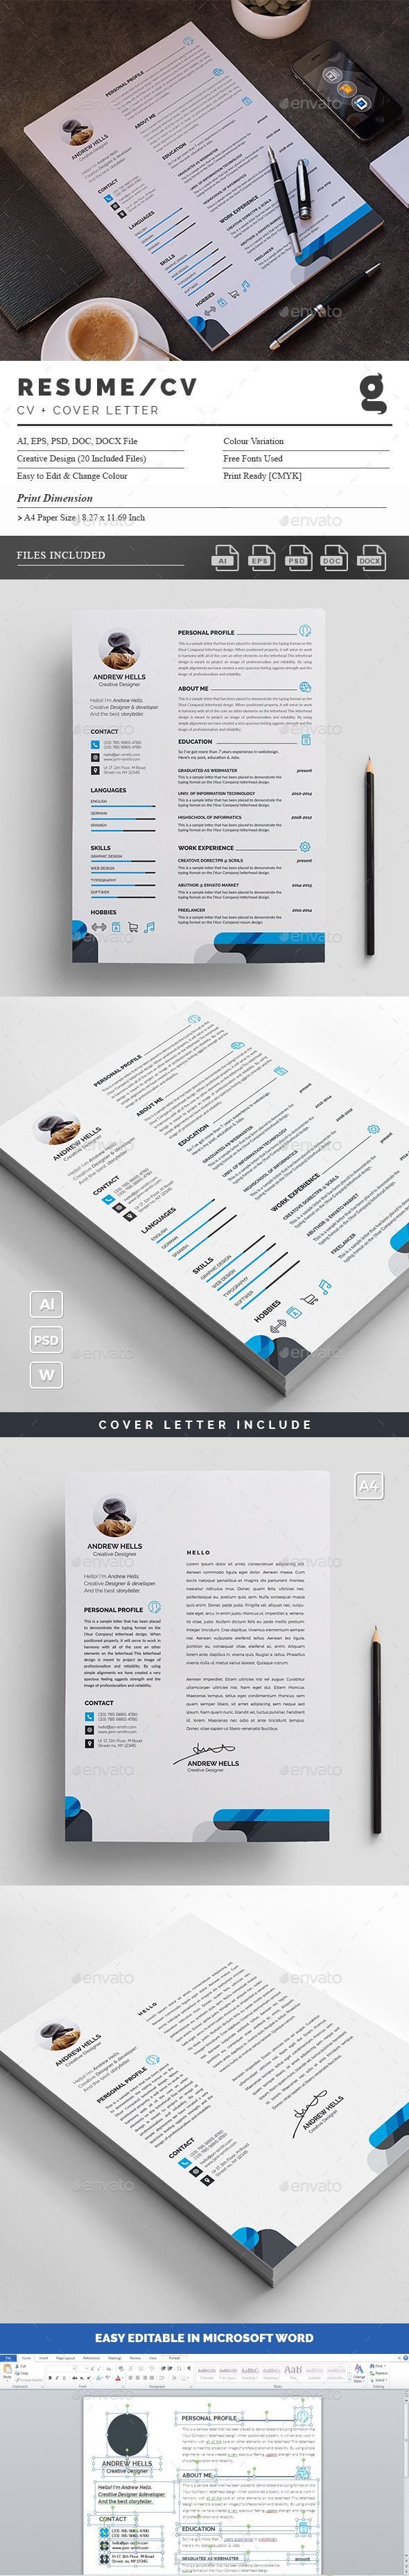 379 Best Resume Cover Letter Tips Advice Images On Pinterest